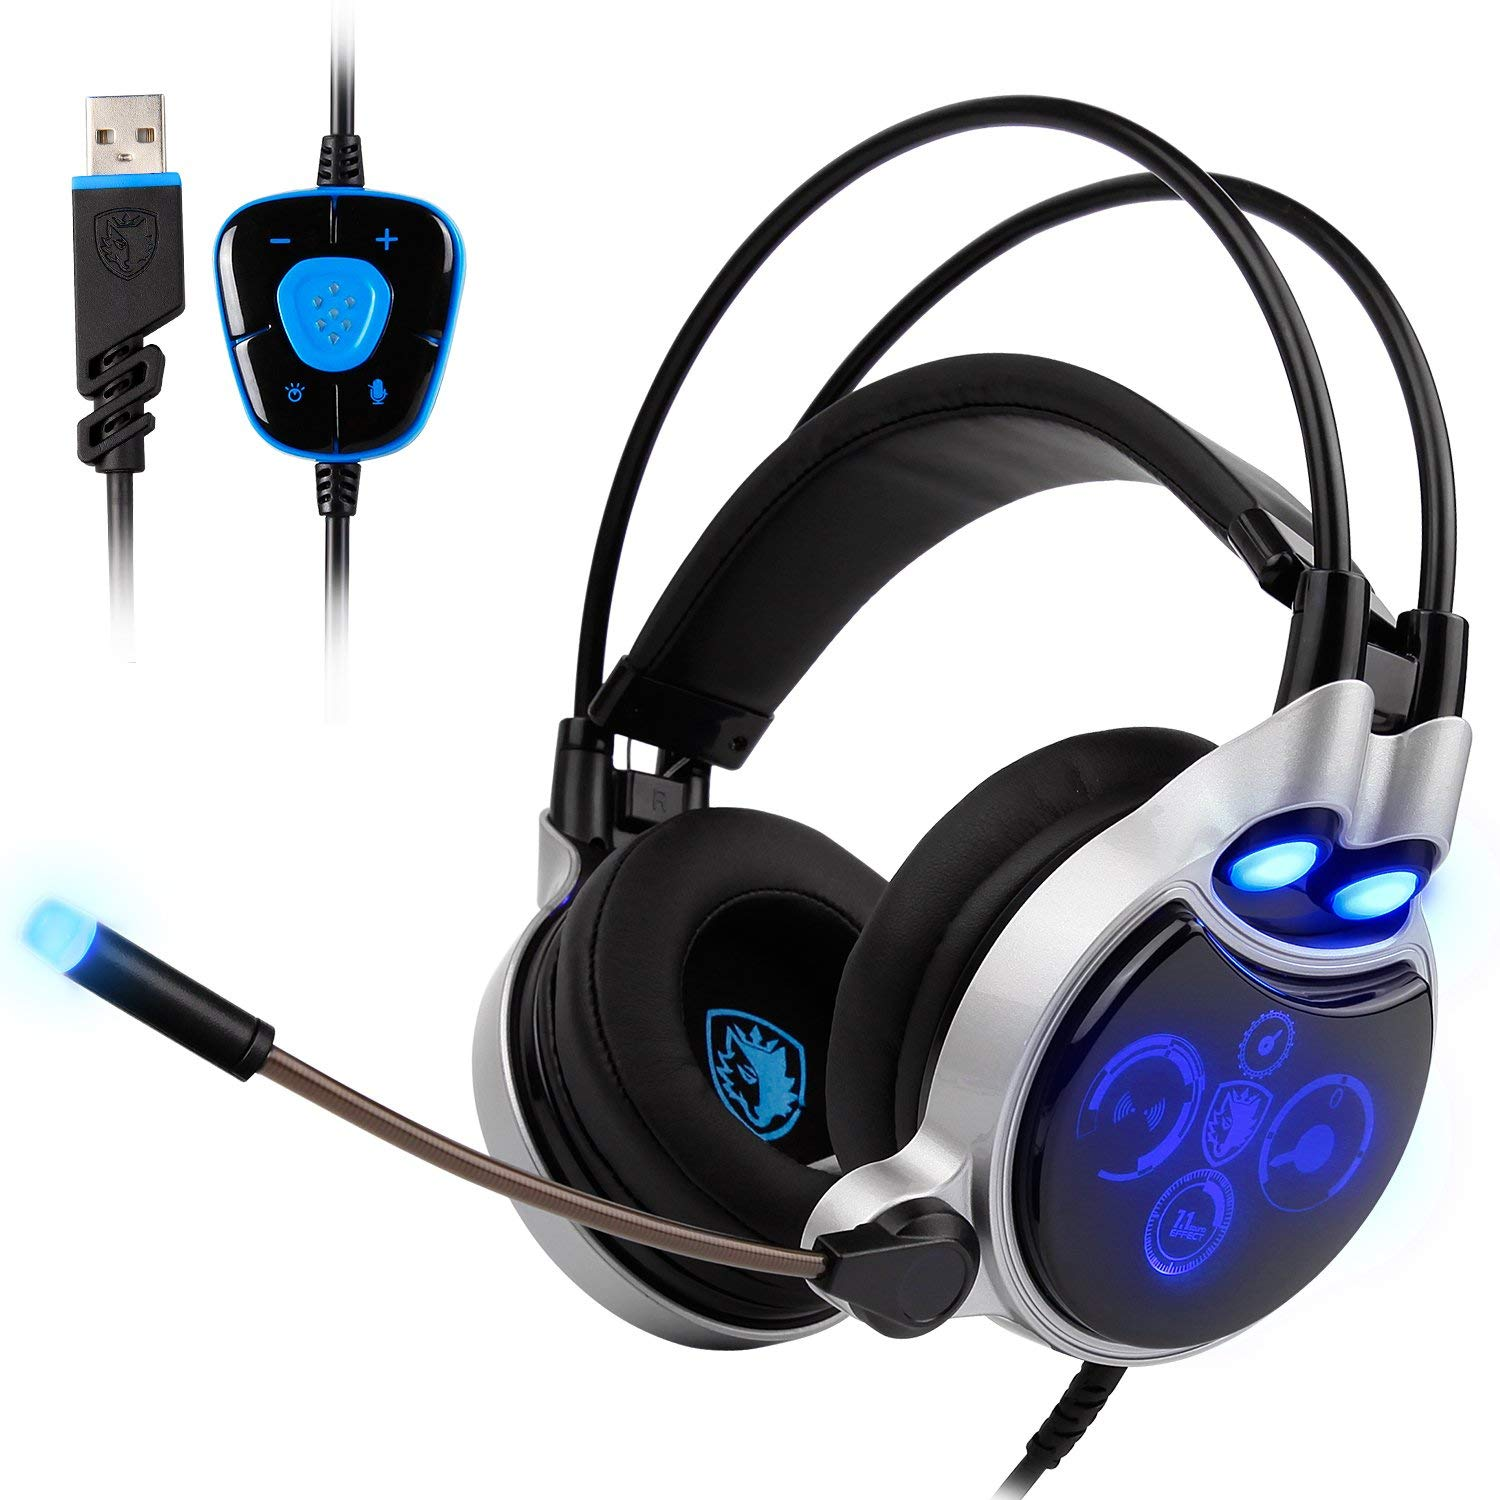 где купить PC Gaming Headset Stereo 7.1 Surround Sound USB Wired Headphones Flexible with Mic,Volume Control,LED Lighting,Noise Cancelling по лучшей цене